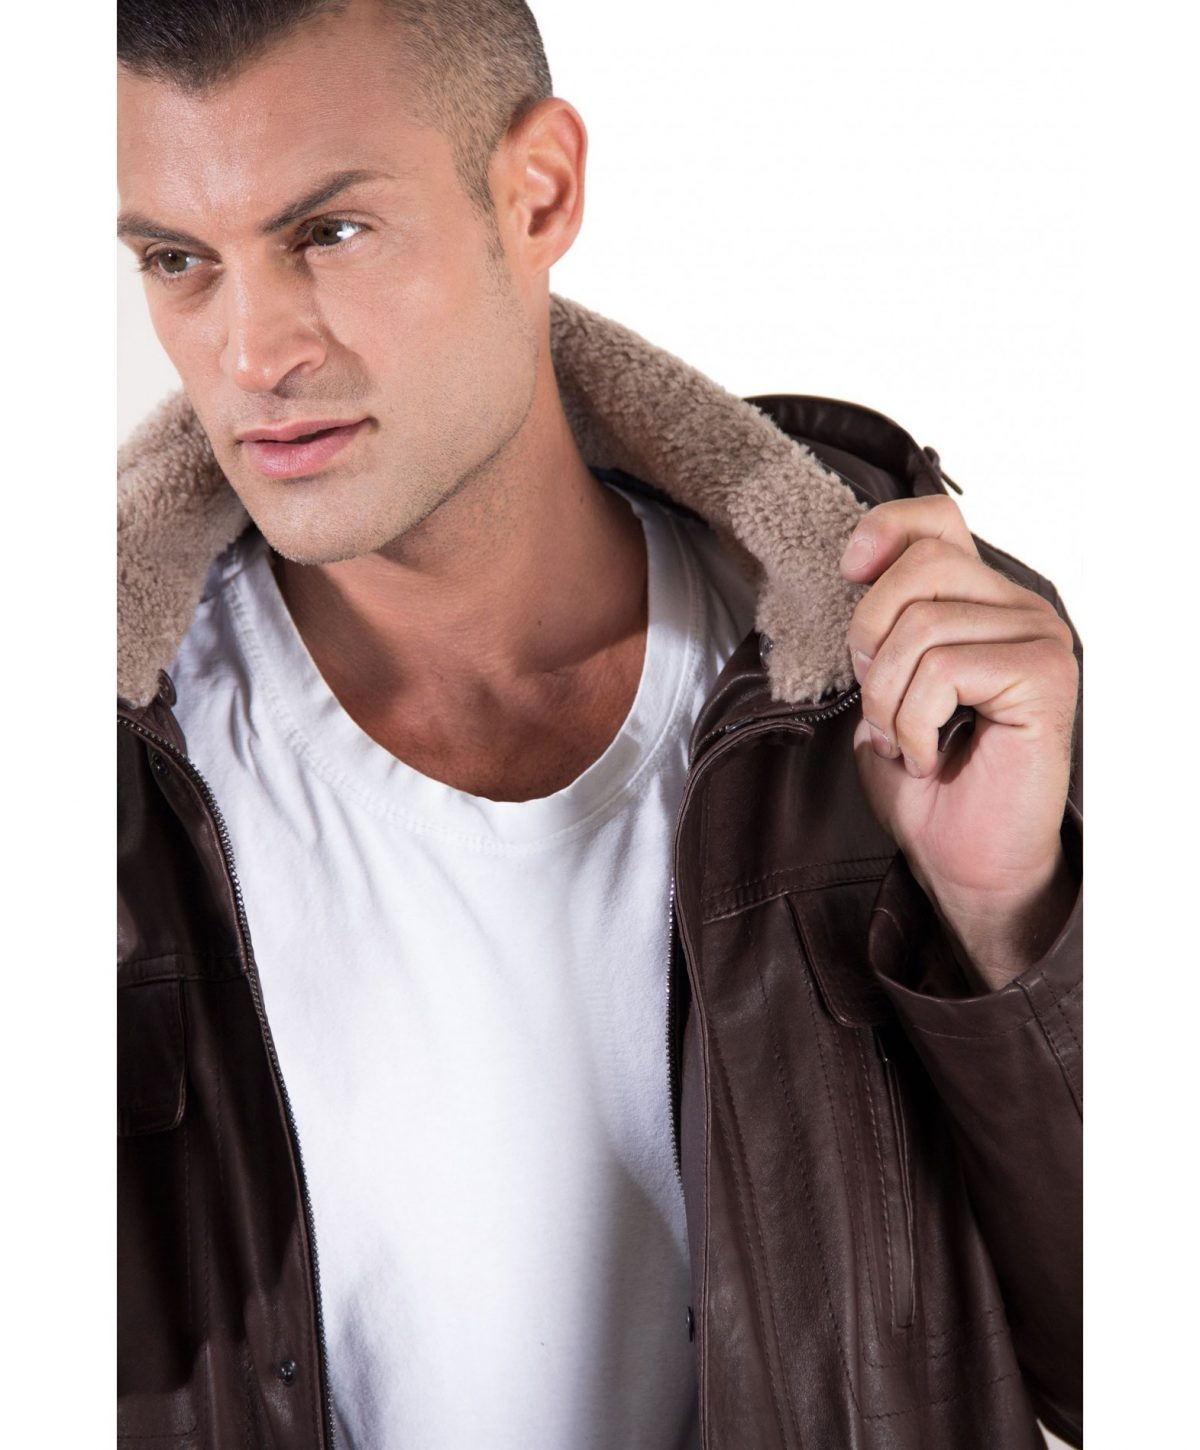 men-s-long-leather-coat-genuine-soft-leather-5-pockets-detachable-hood-buttons-and-zip-closing-dark-brown-color-mod-vittorio (3)